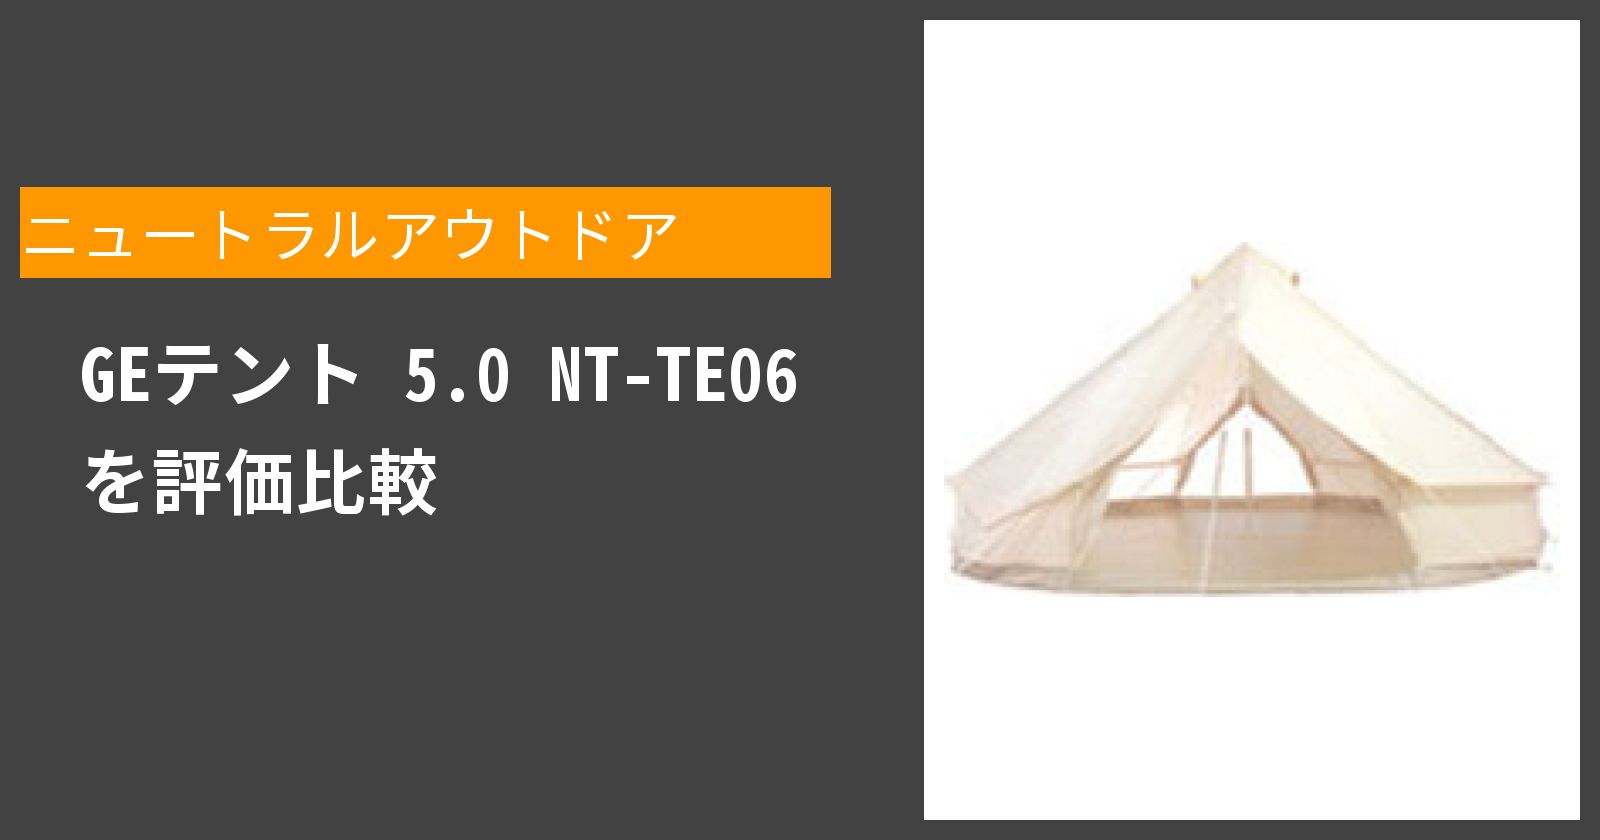 GEテント 5.0 NT-TE06を徹底評価